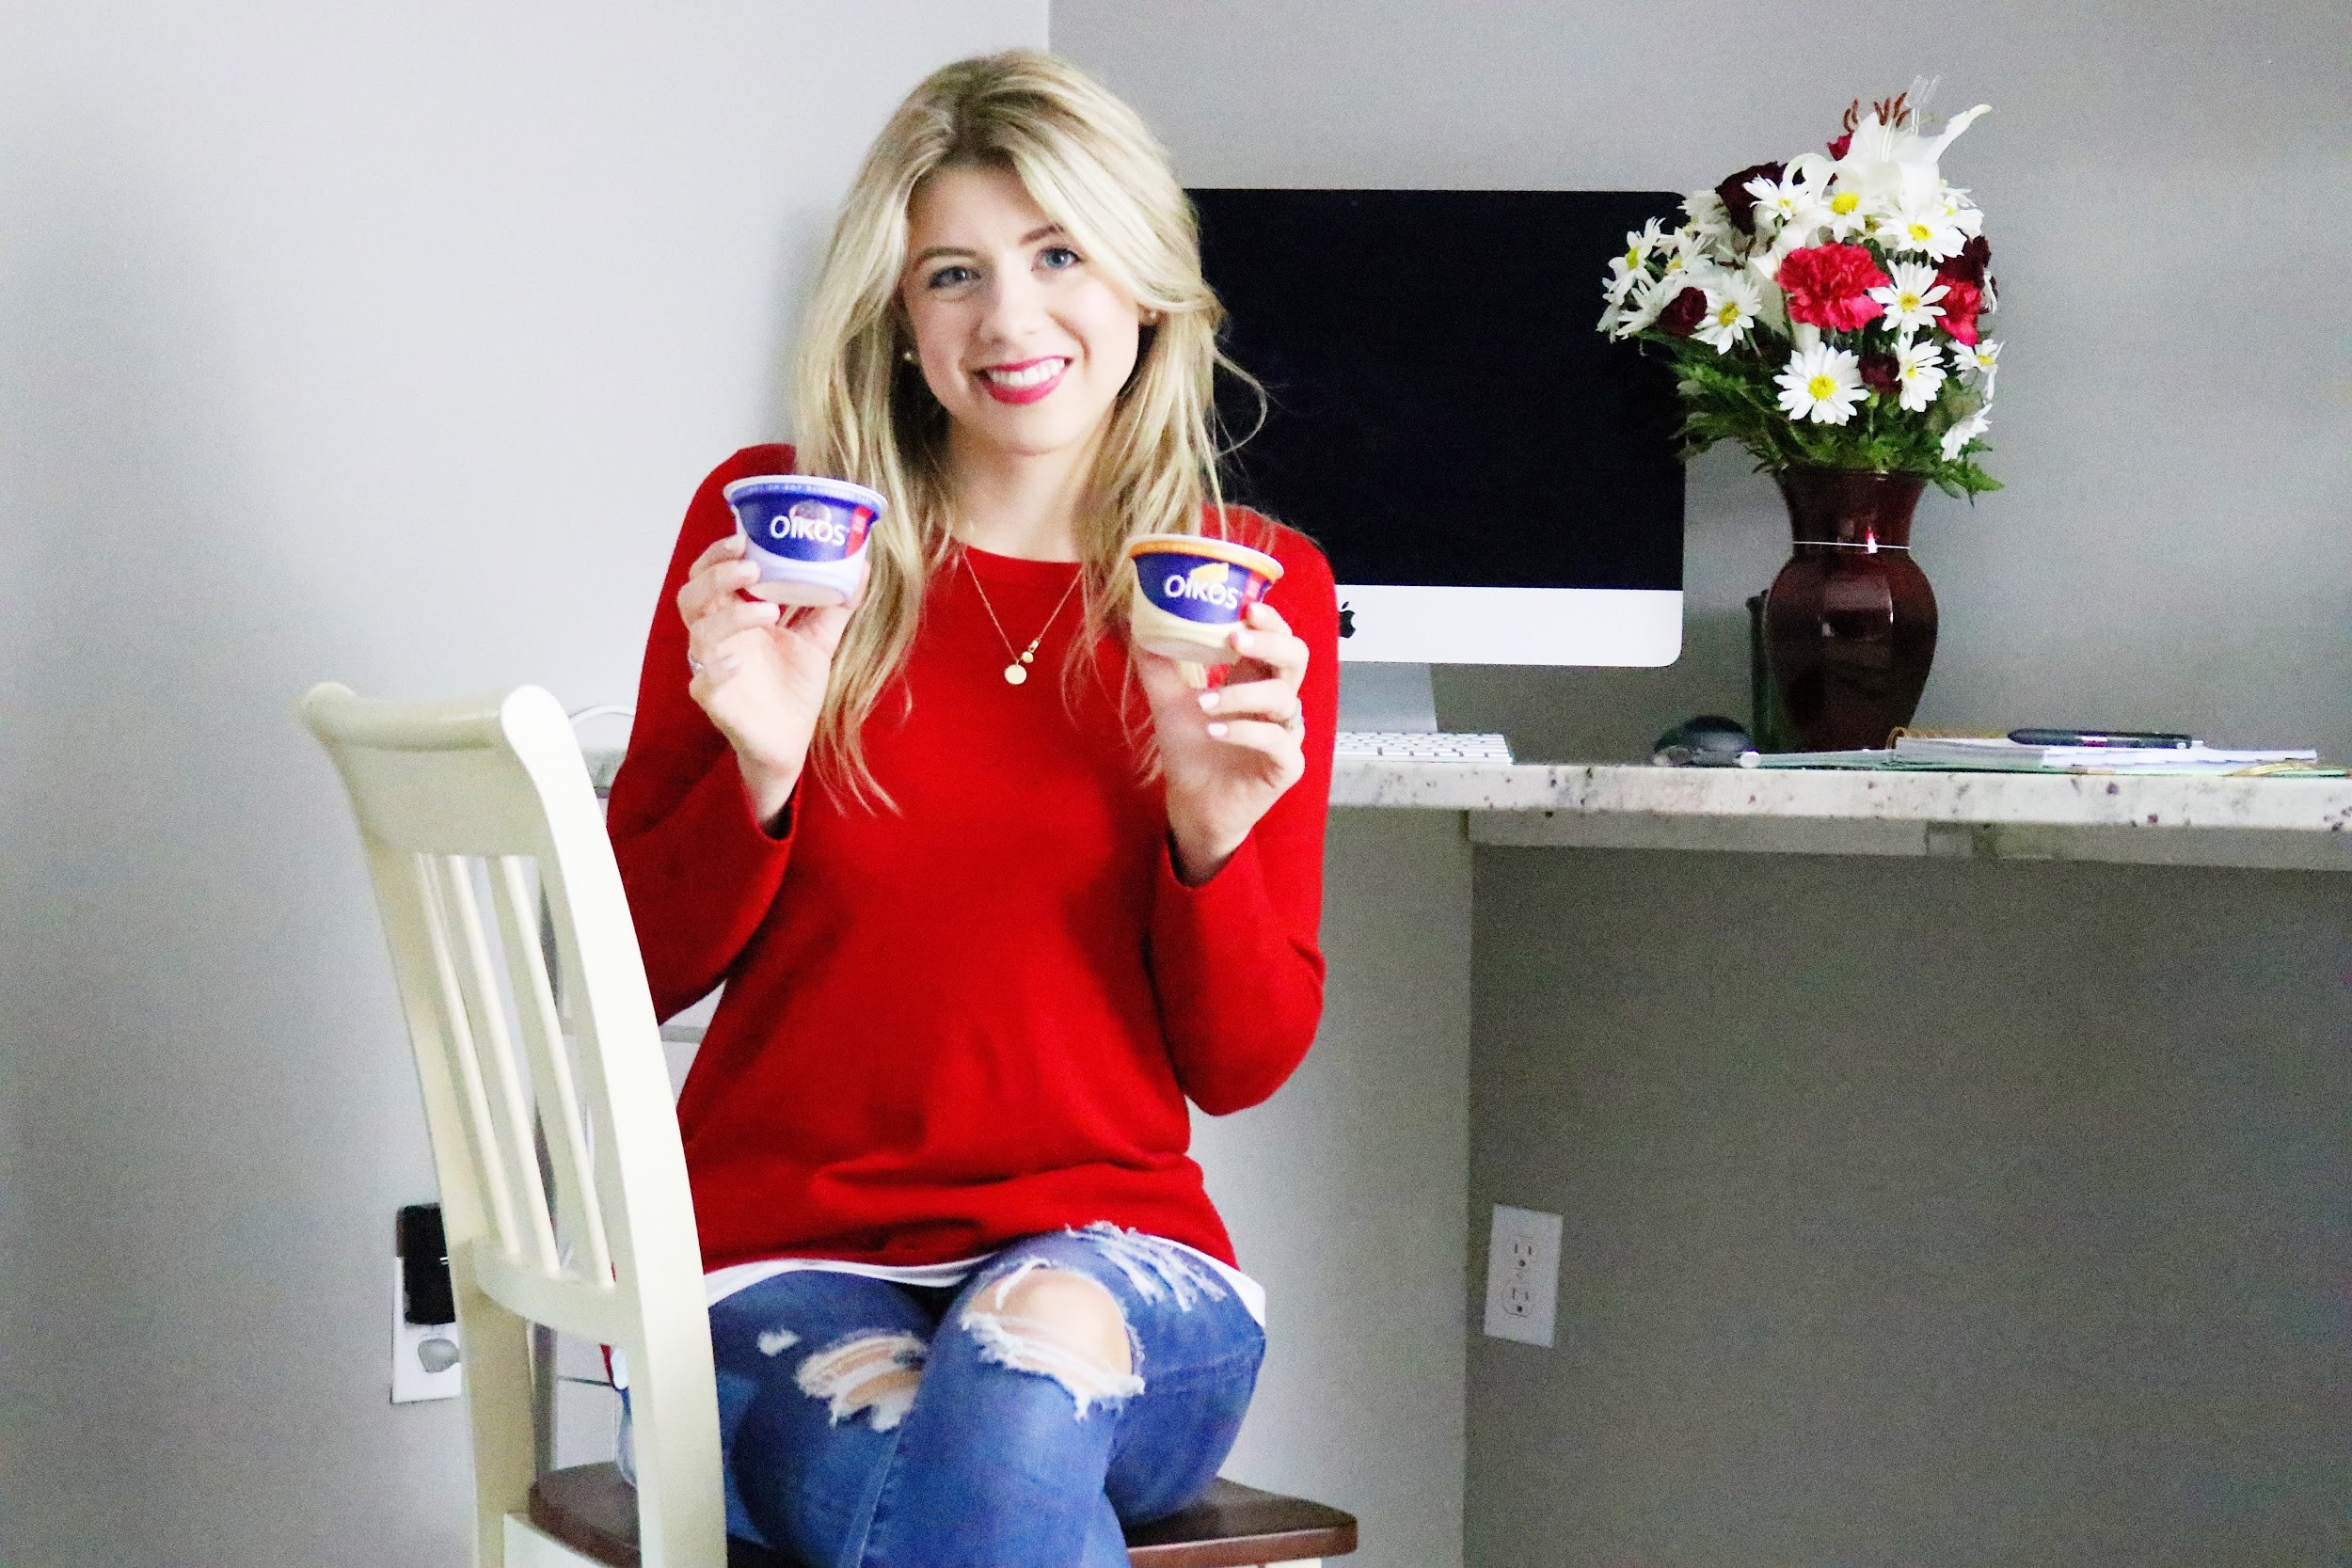 Okios Yogurt Campaign - Blogger Sarah J - Top Lifestyle Blogger 7.jpg